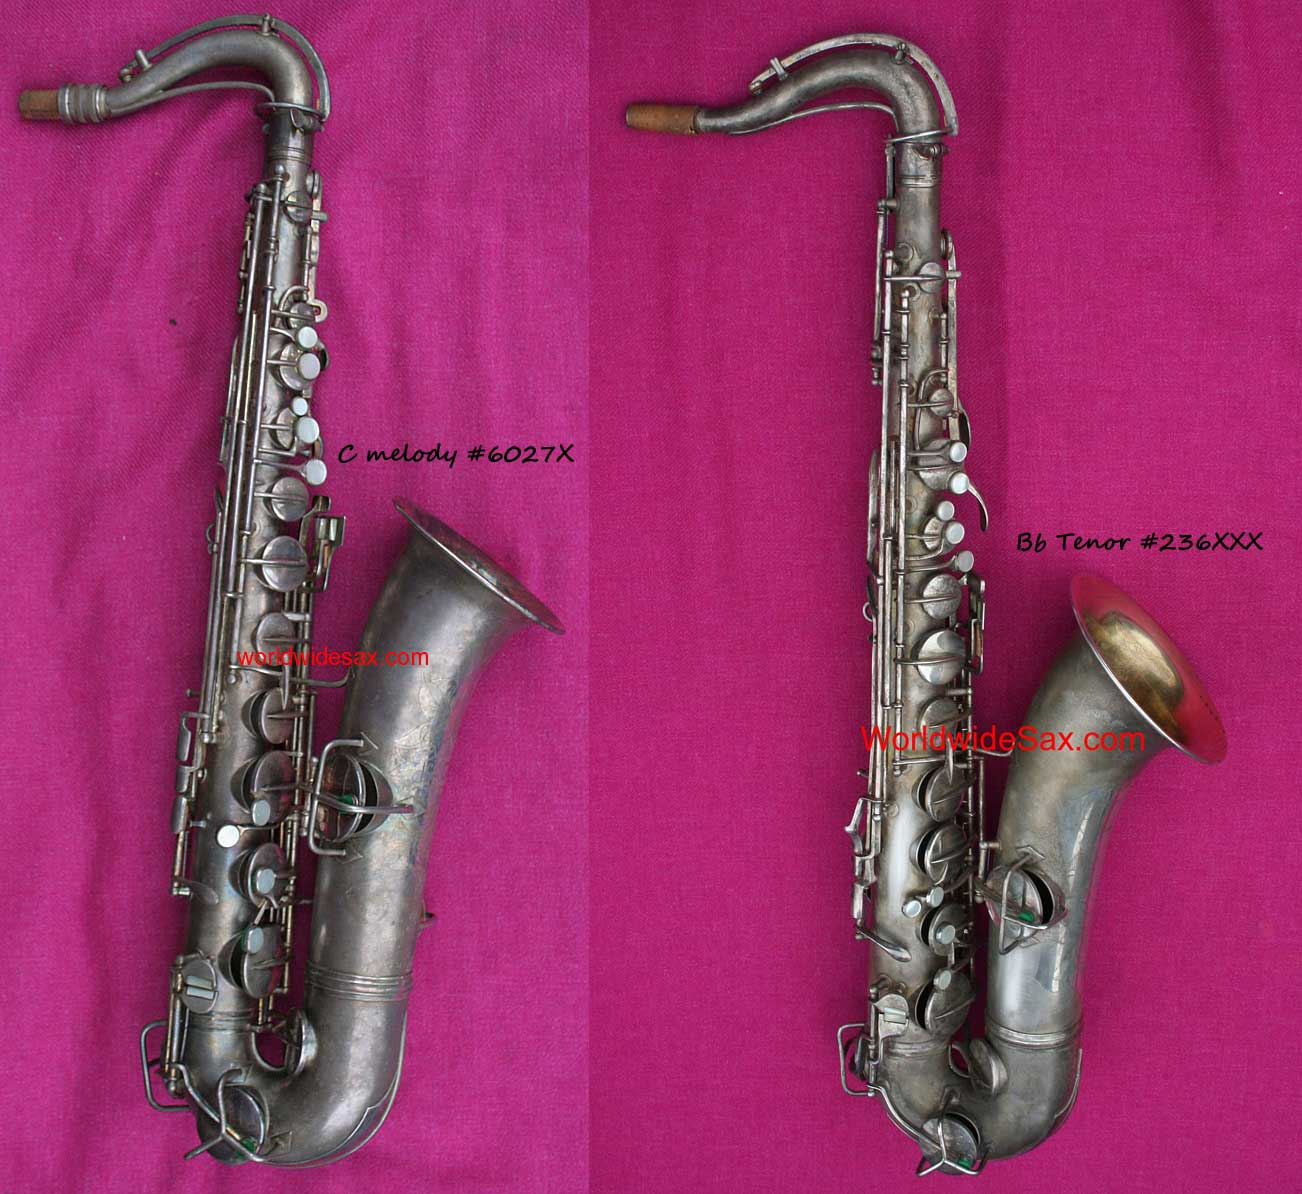 How can you tell a C melody from a Bb tenor sax, Conn tenor-shaped C melody sax, Conn tenor, New Wonder Series